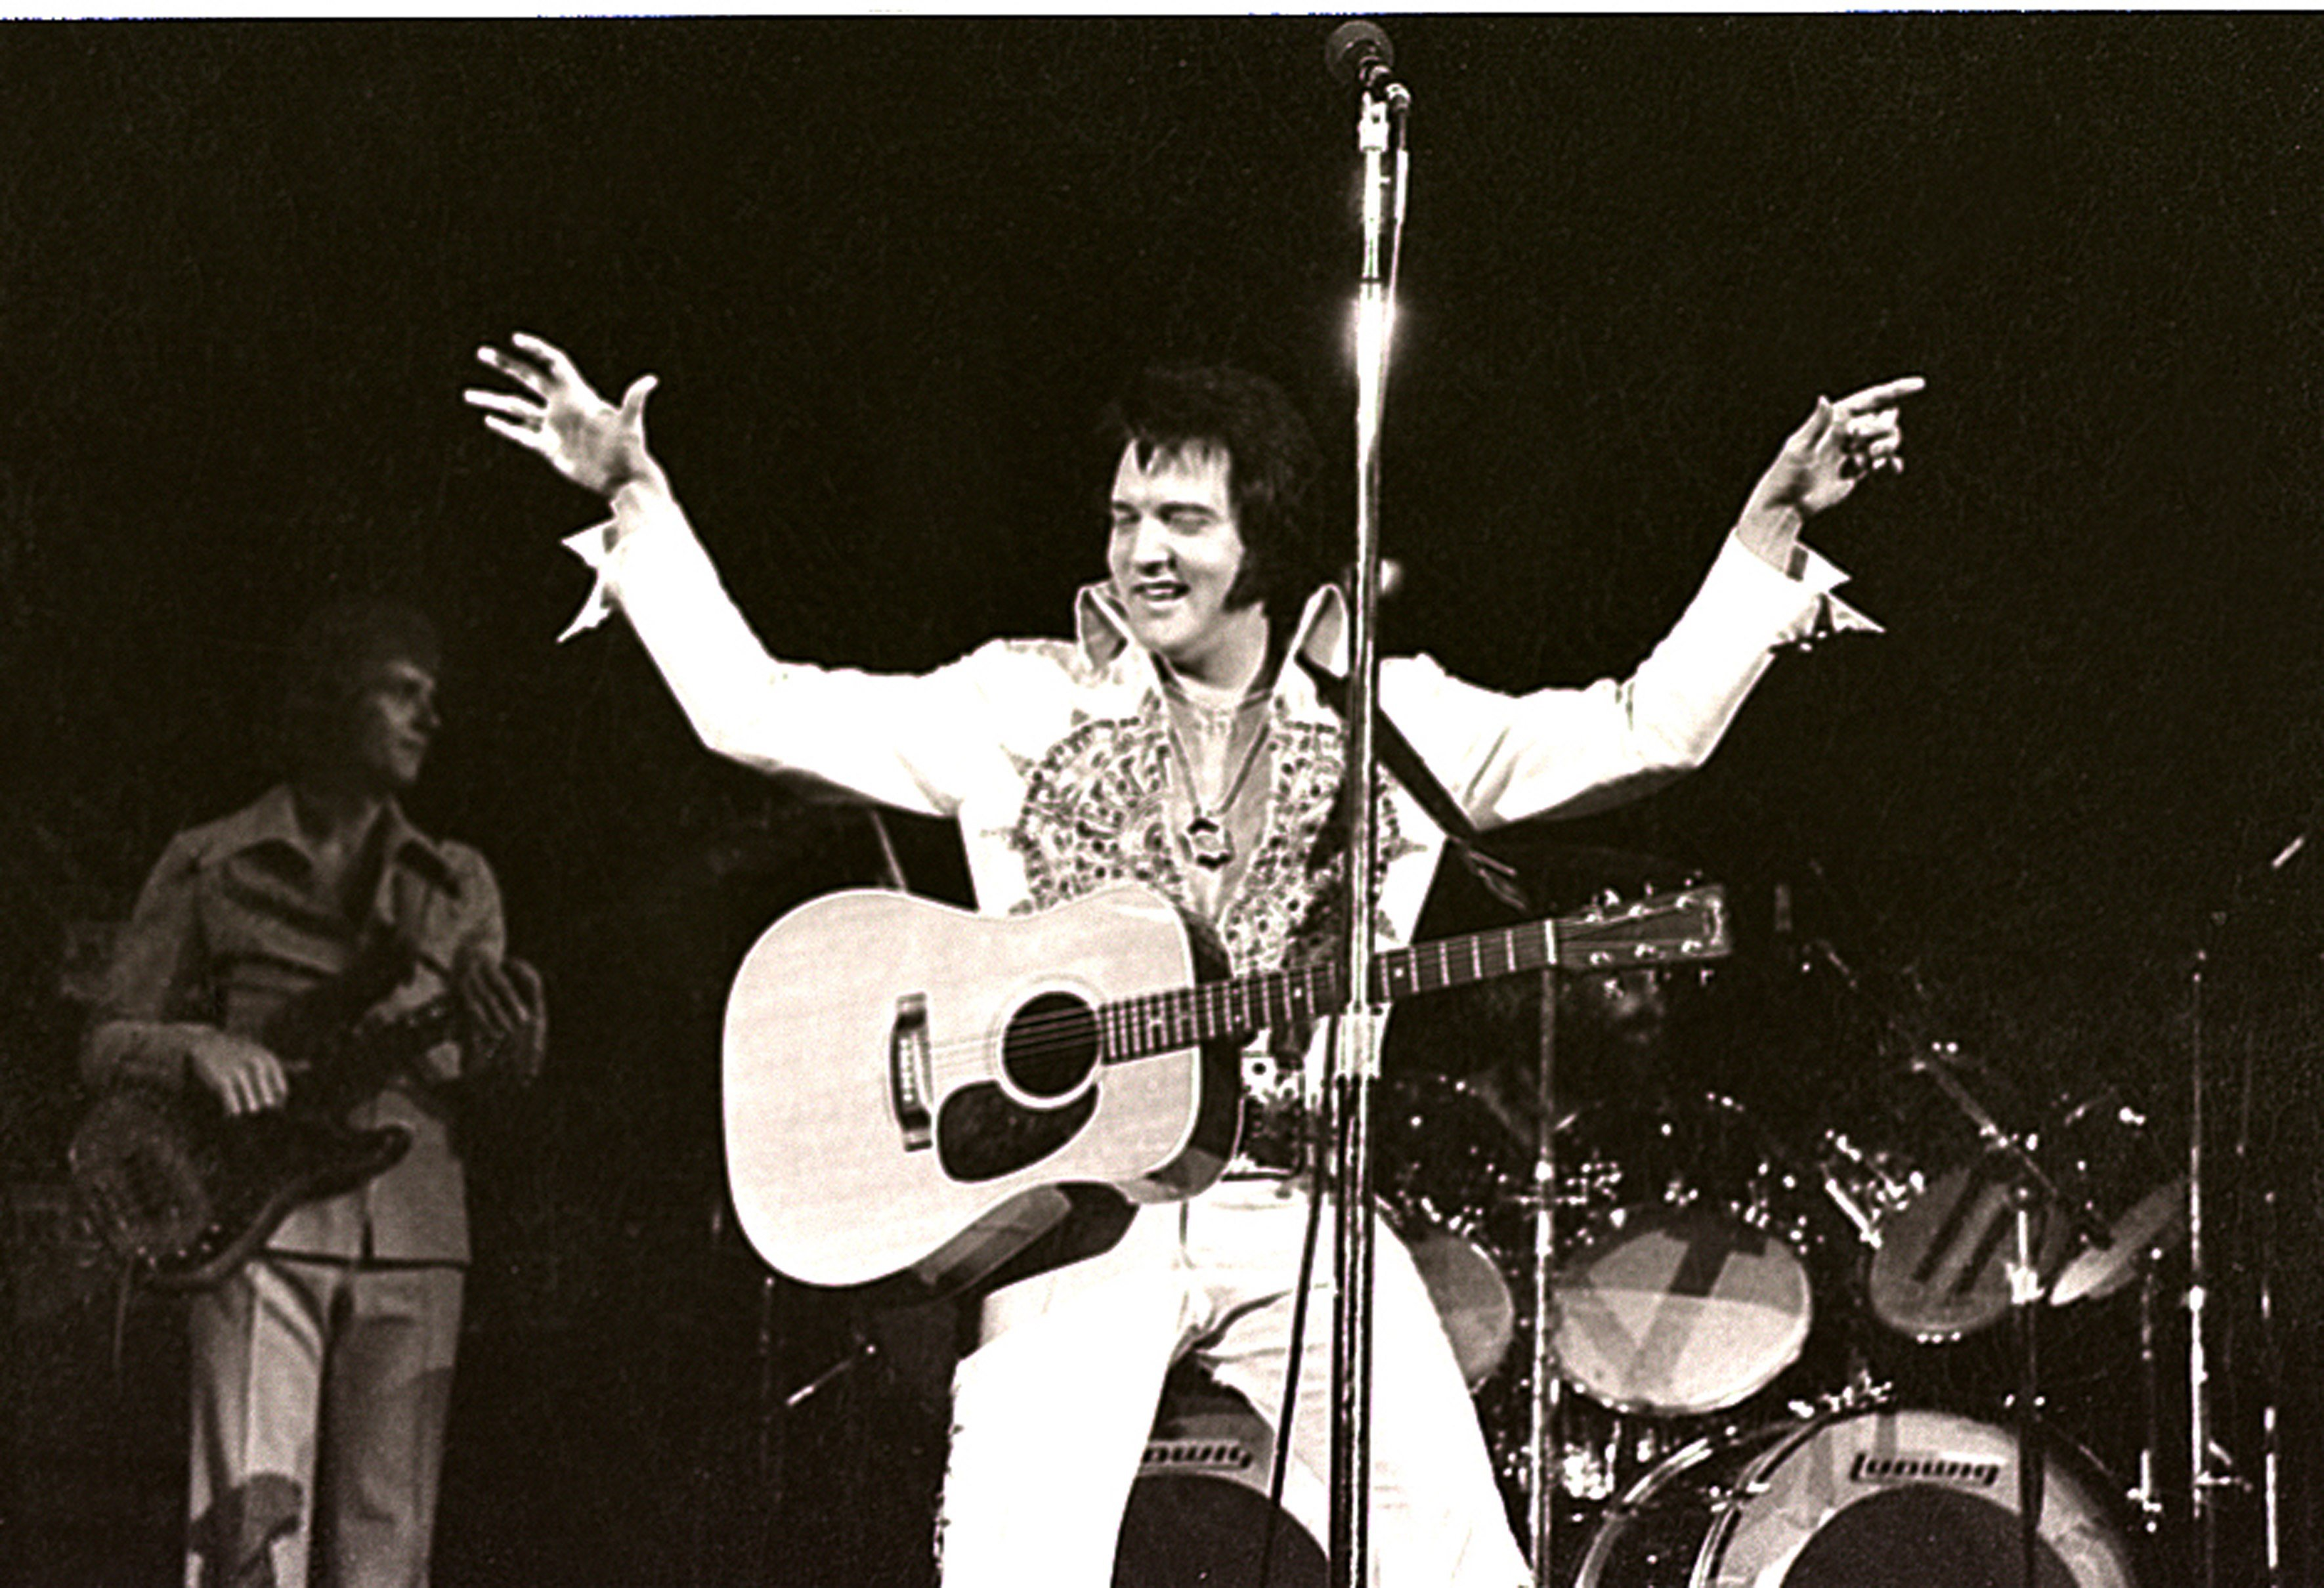 Music superstar and multi-Grammy awardee Elvis Presley during his 1977 performance in Milwaukee. | Photo: Getty Images